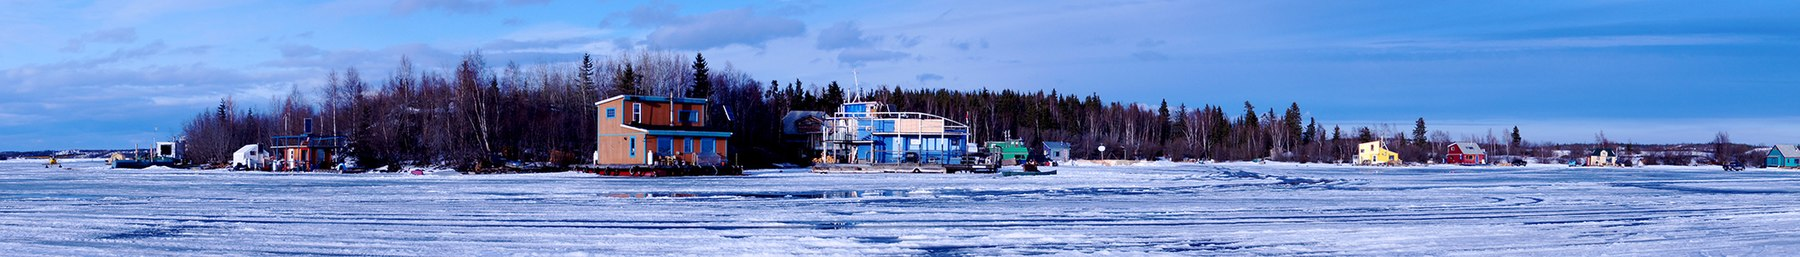 Yellowknife Bay banner Boat houses.jpg